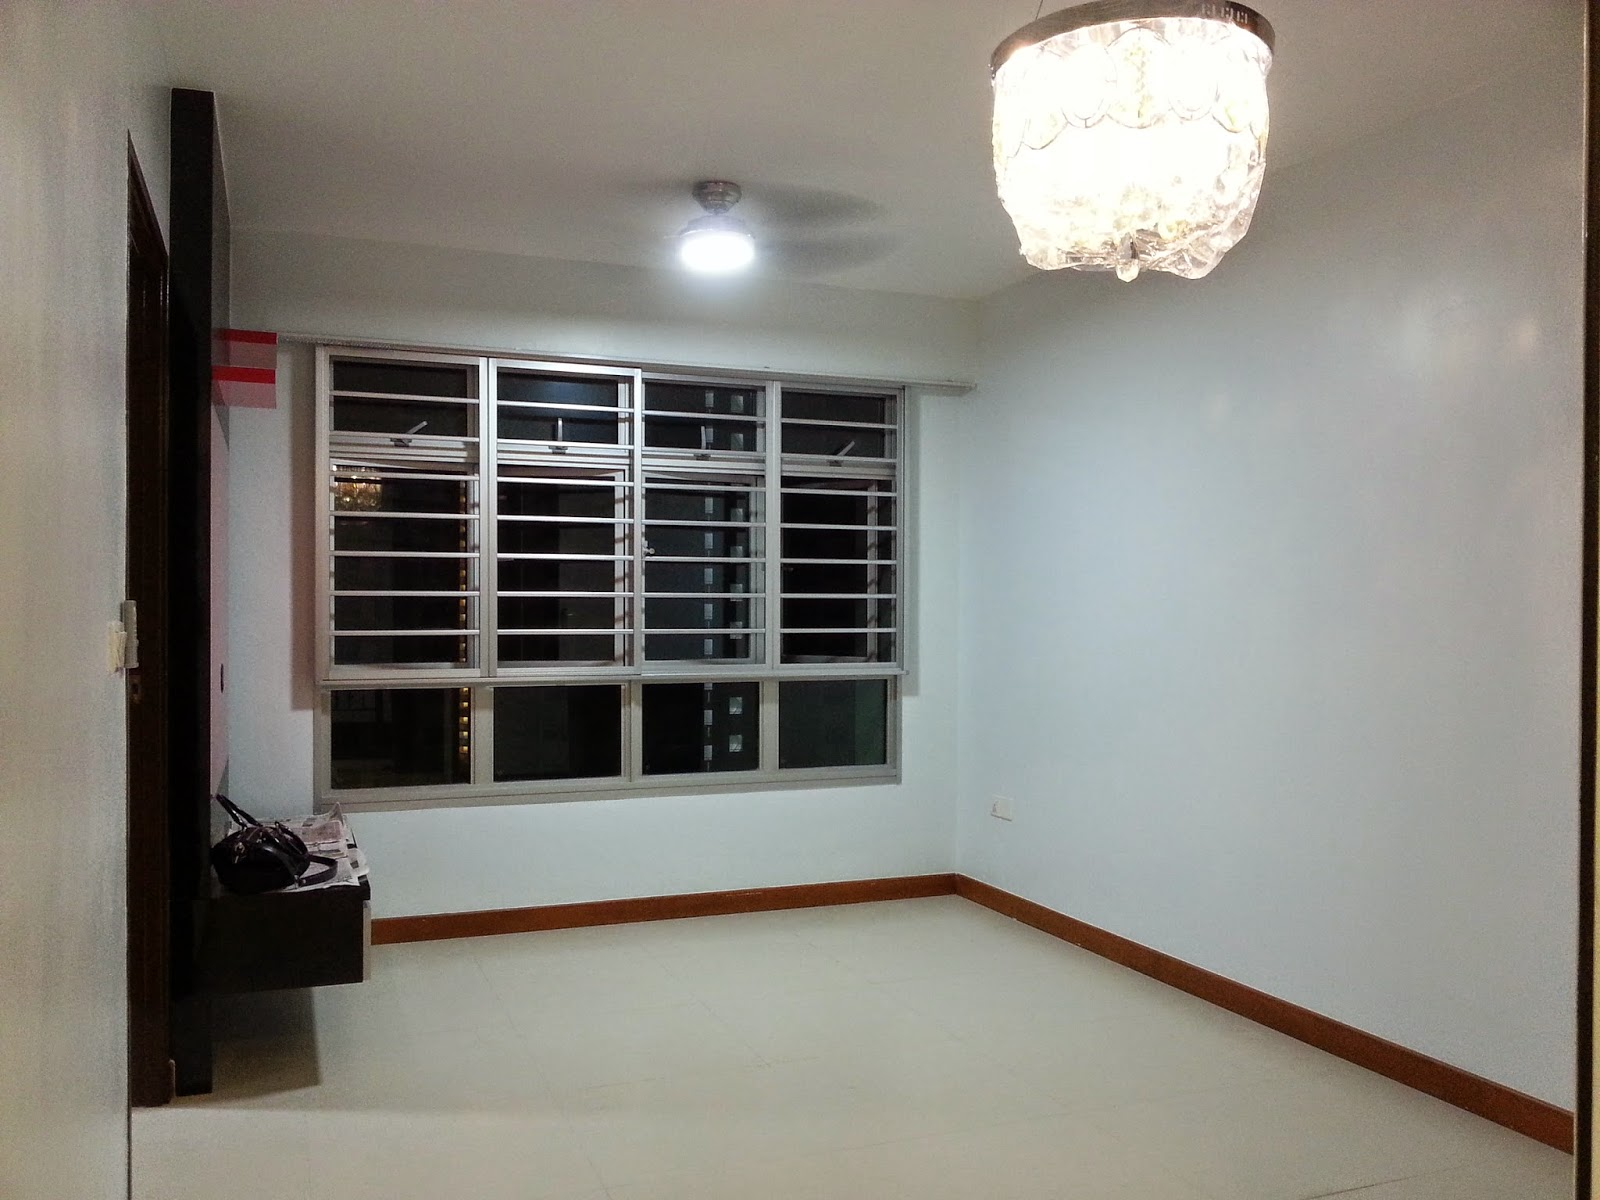 2 Room Bto Renovation Affordable Price 2 3 4 5 Room